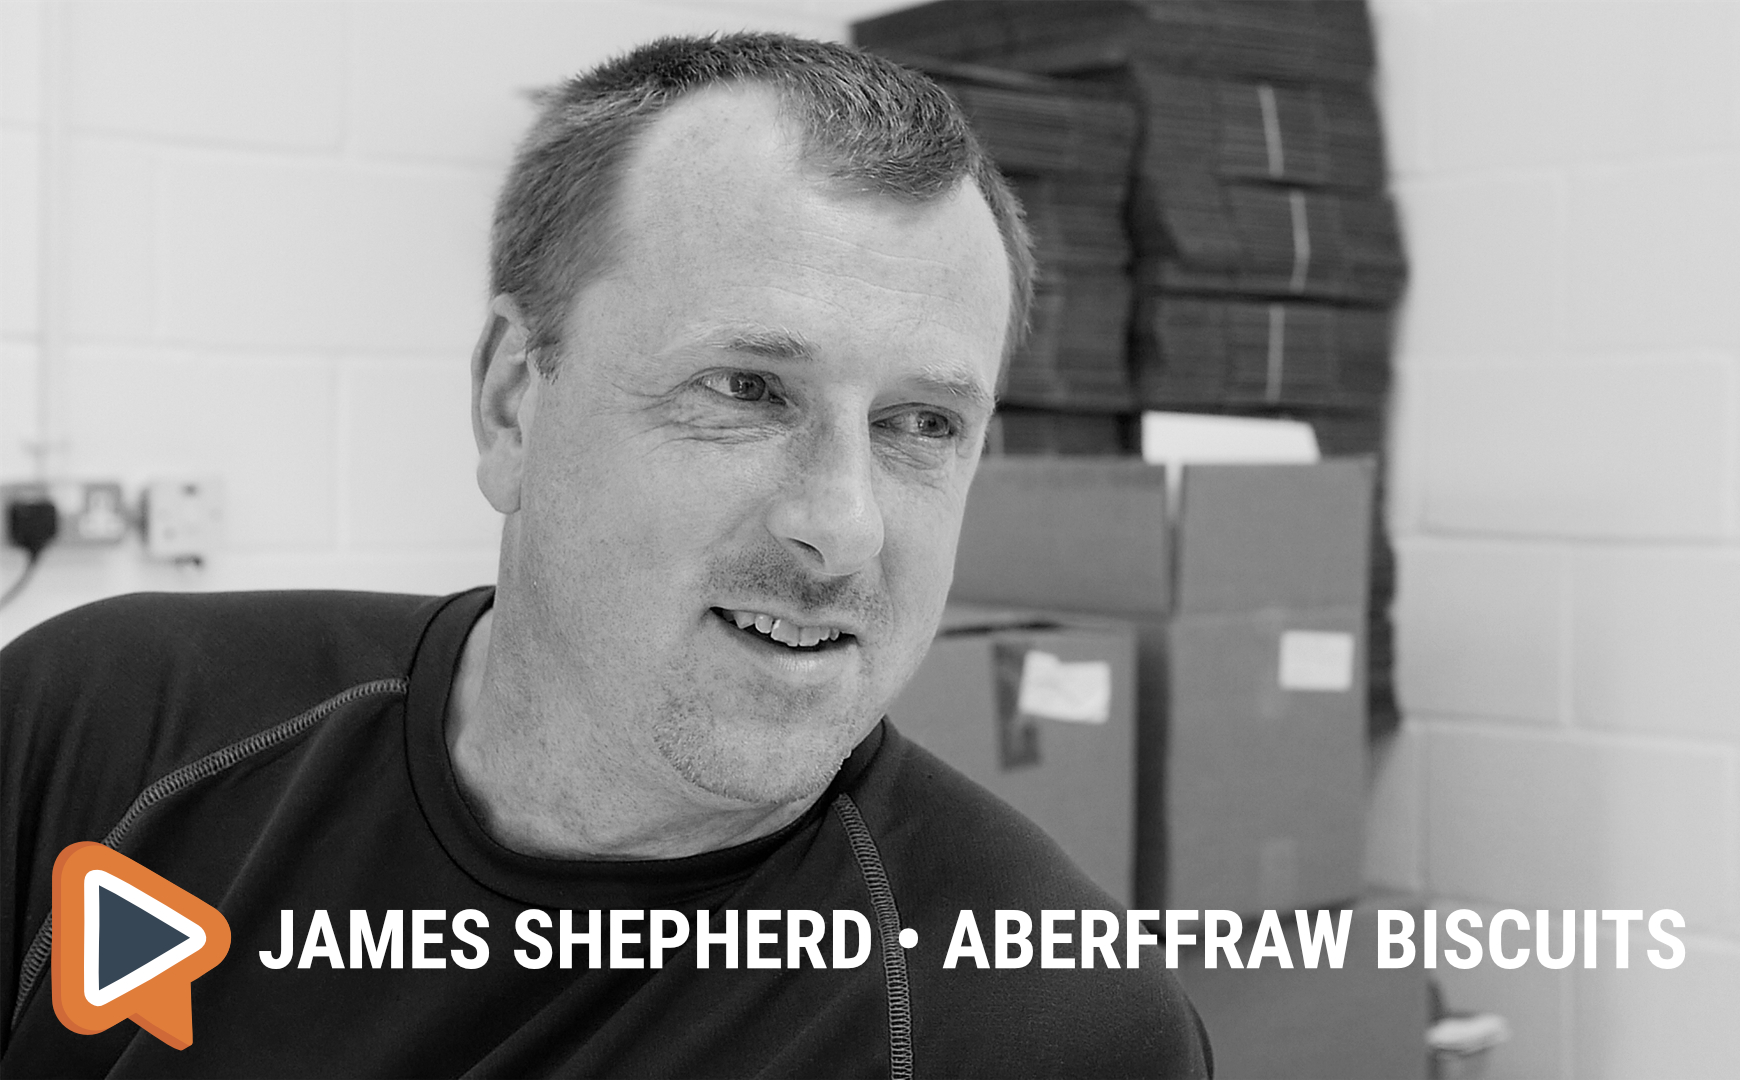 Aberffraw Biscuits - James Shepherd